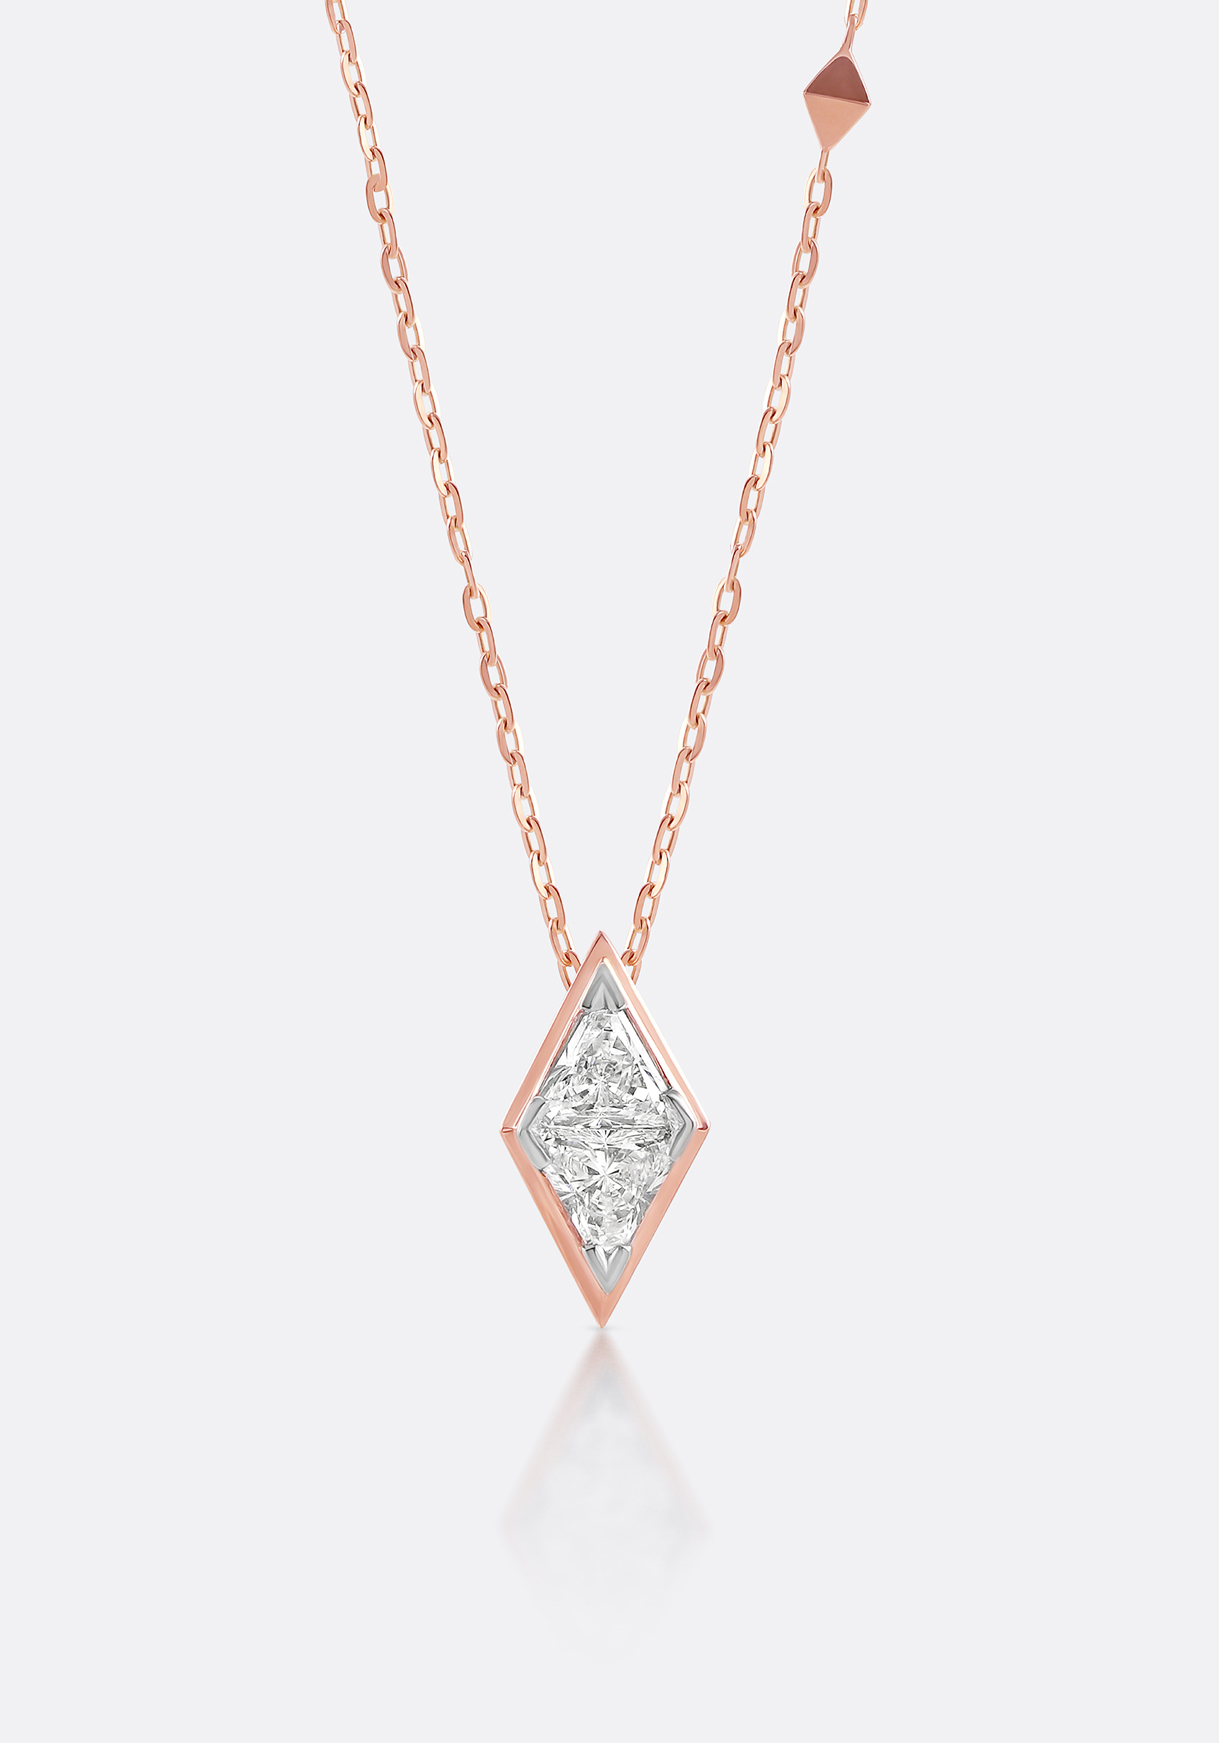 Pendant - sharp silhouettes and faceted diamonds create an eye-catching effect.